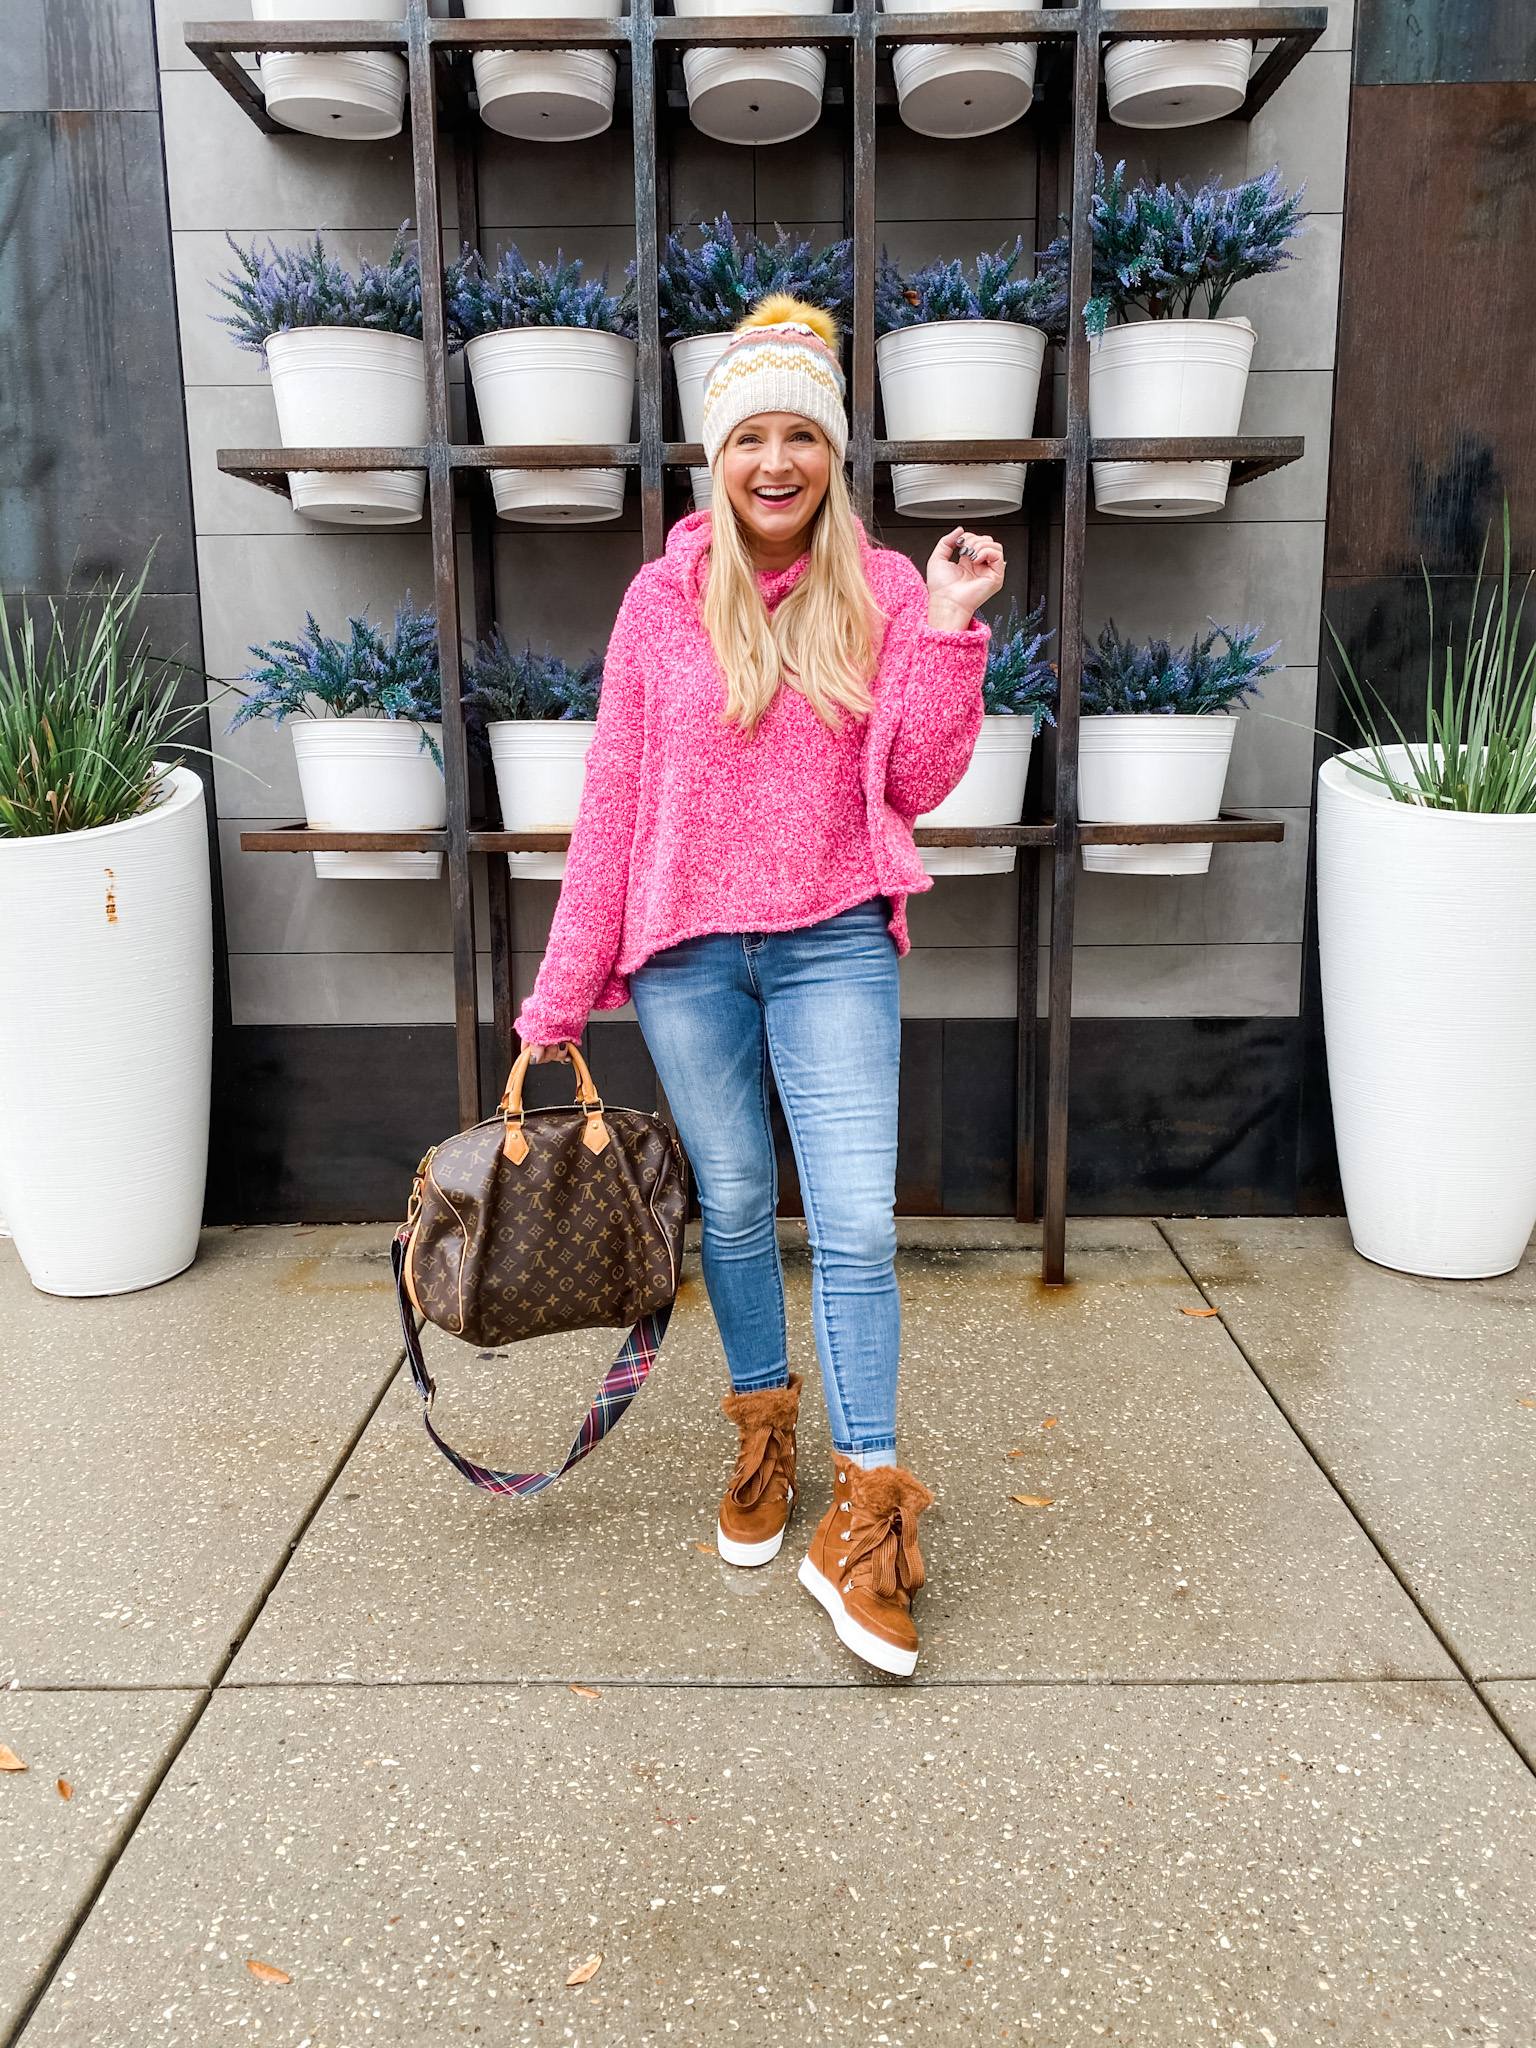 December Outfits by popular Houston fashion blog, Fancy Ashley: image of a woman standing outside and wearing pink hooded pullover sweater, jeans, brown suede fur lined high top sneakers, and cream fur pom beanie while holding a Louis Vuitton bag.